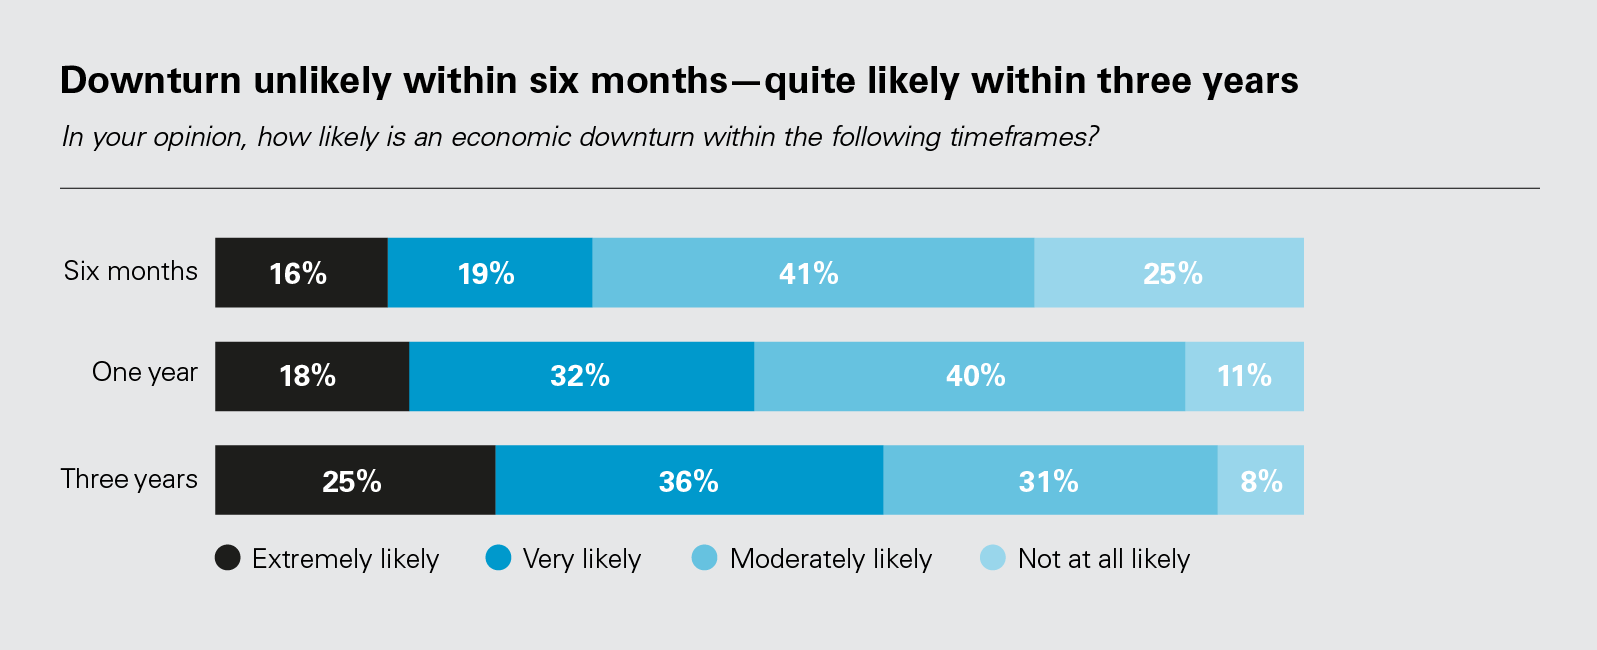 Downturn unlikely within six months—quite likely within three years